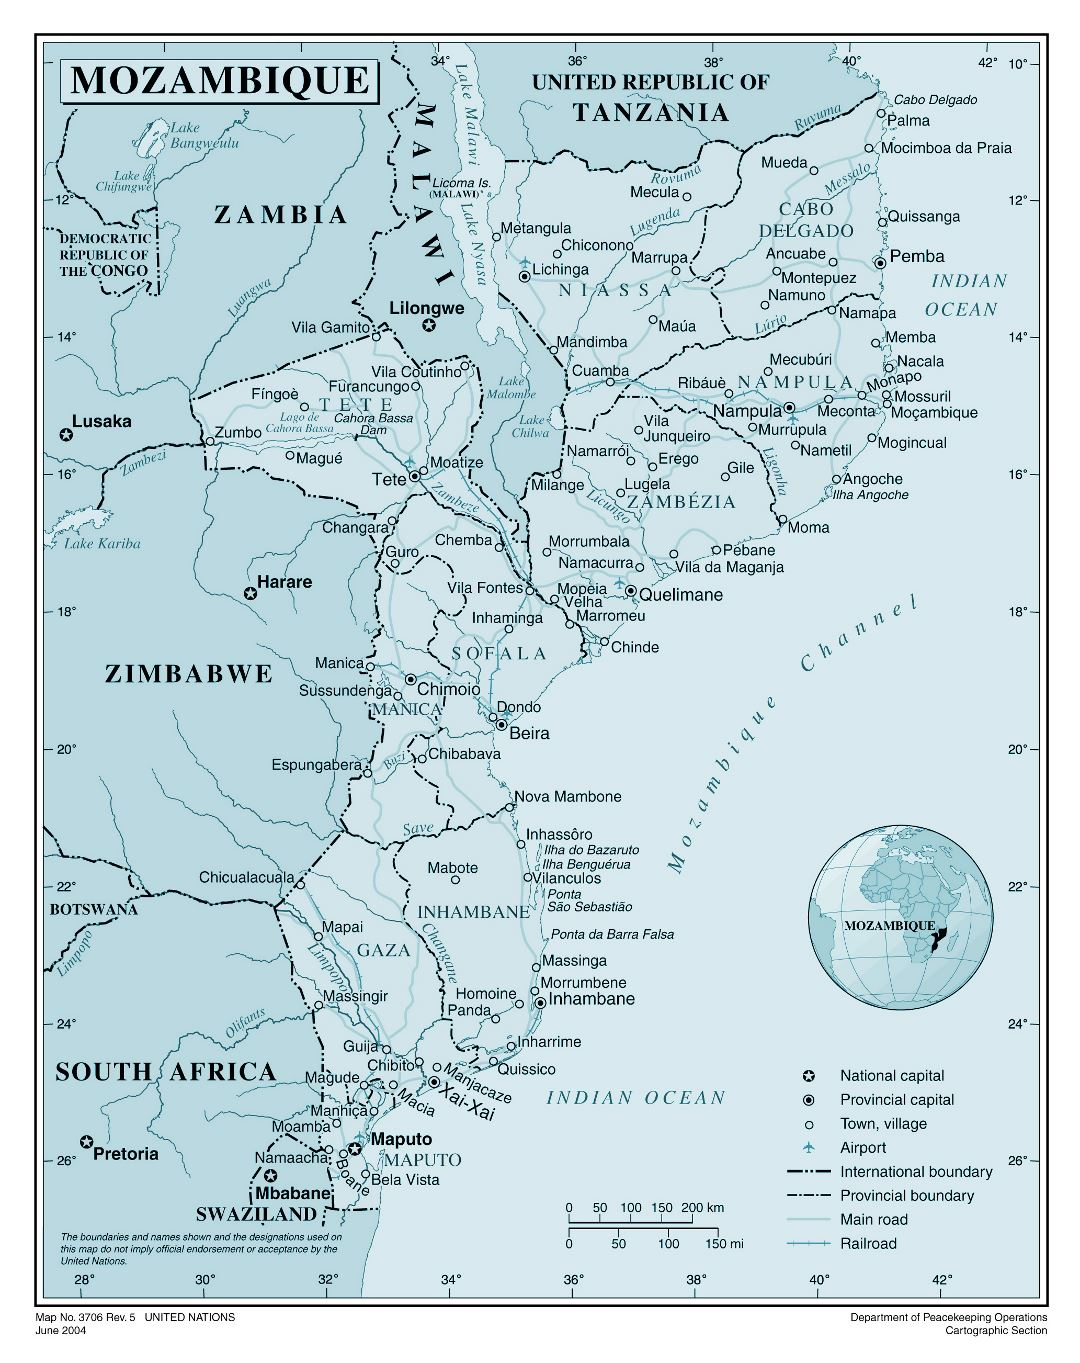 Large detailed political and administrative map of Mozambique with all cities, roads, railroads and airports